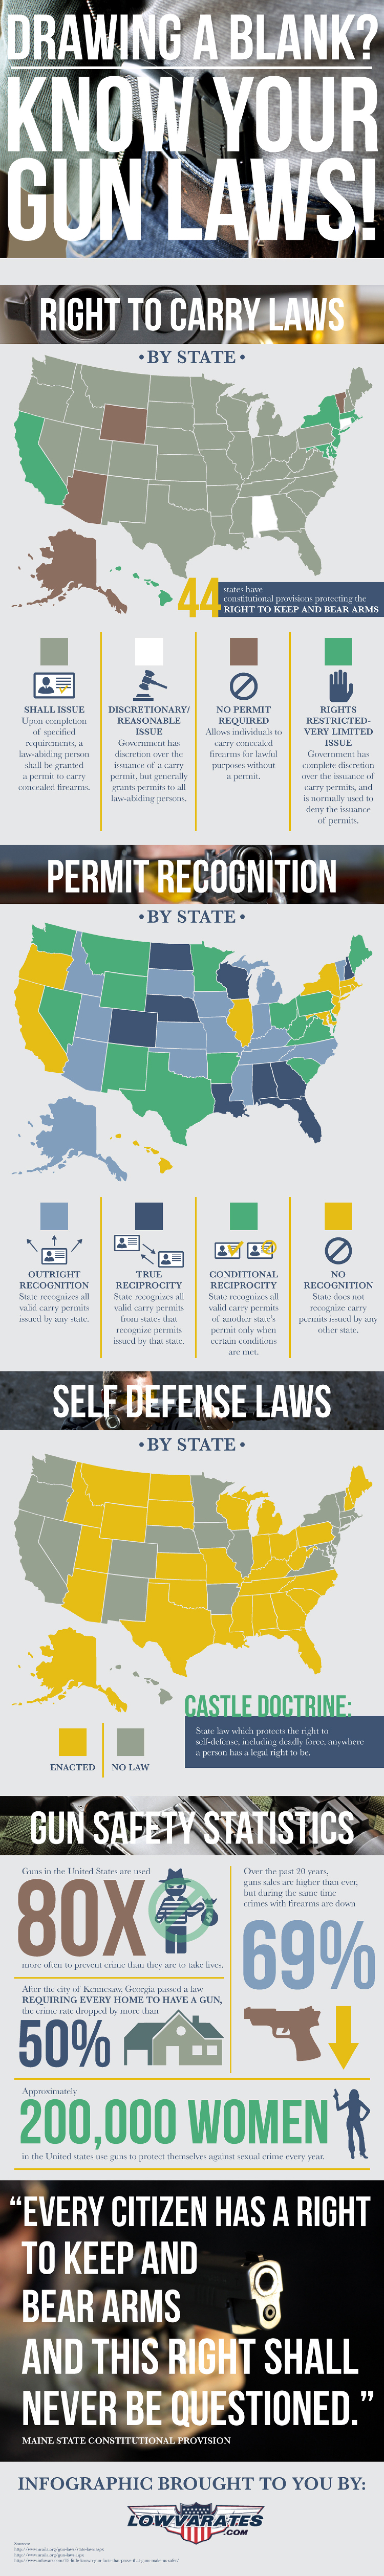 Drawing a Blank? Know Your Gun Laws! Infographic